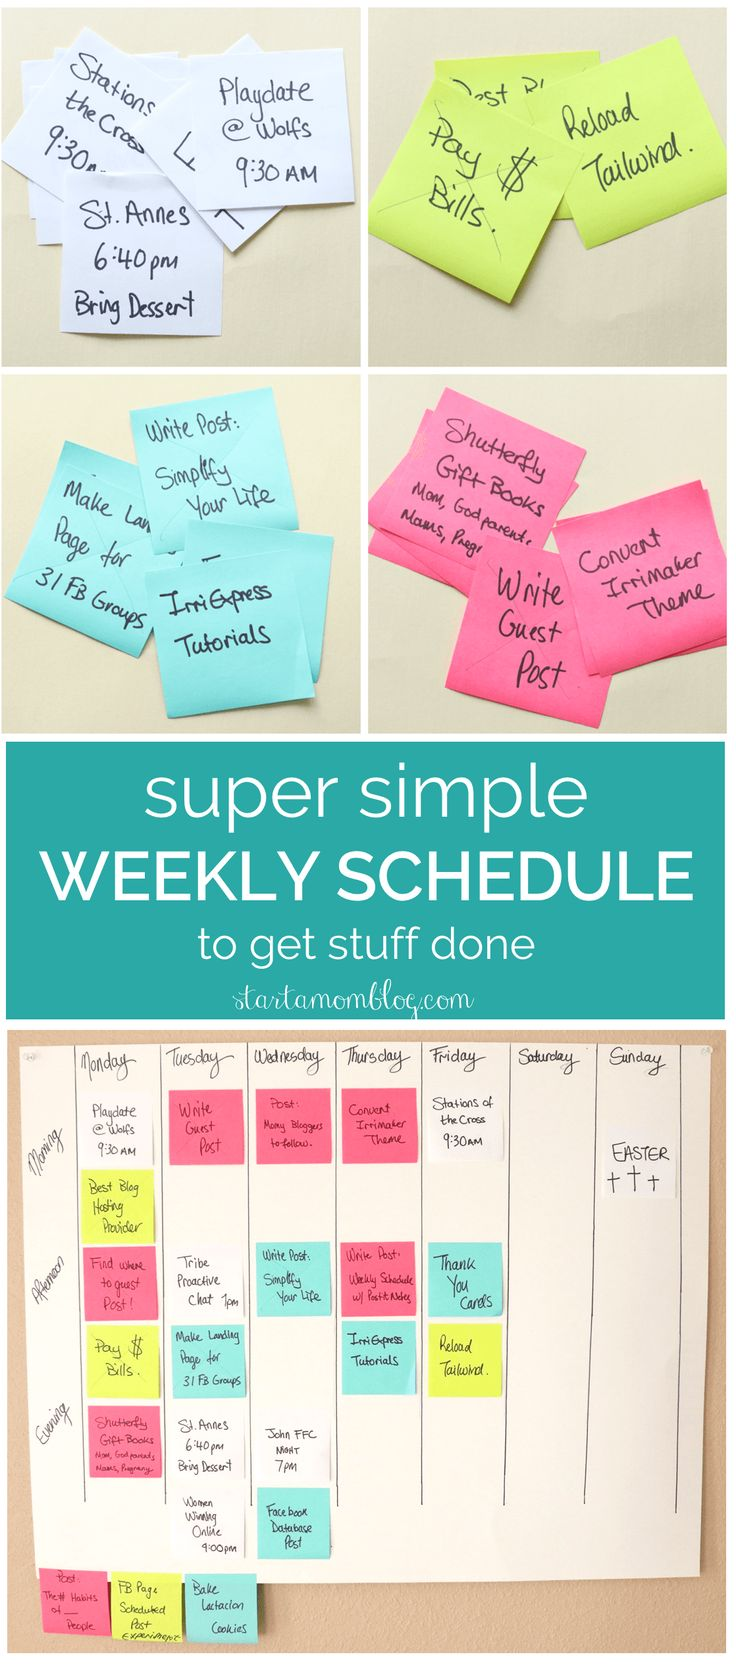 Best 25 weekly schedule ideas on pinterest cleaning hacks housework schedule and hacks every - Five easy cleaning tips get some time for yourself ...